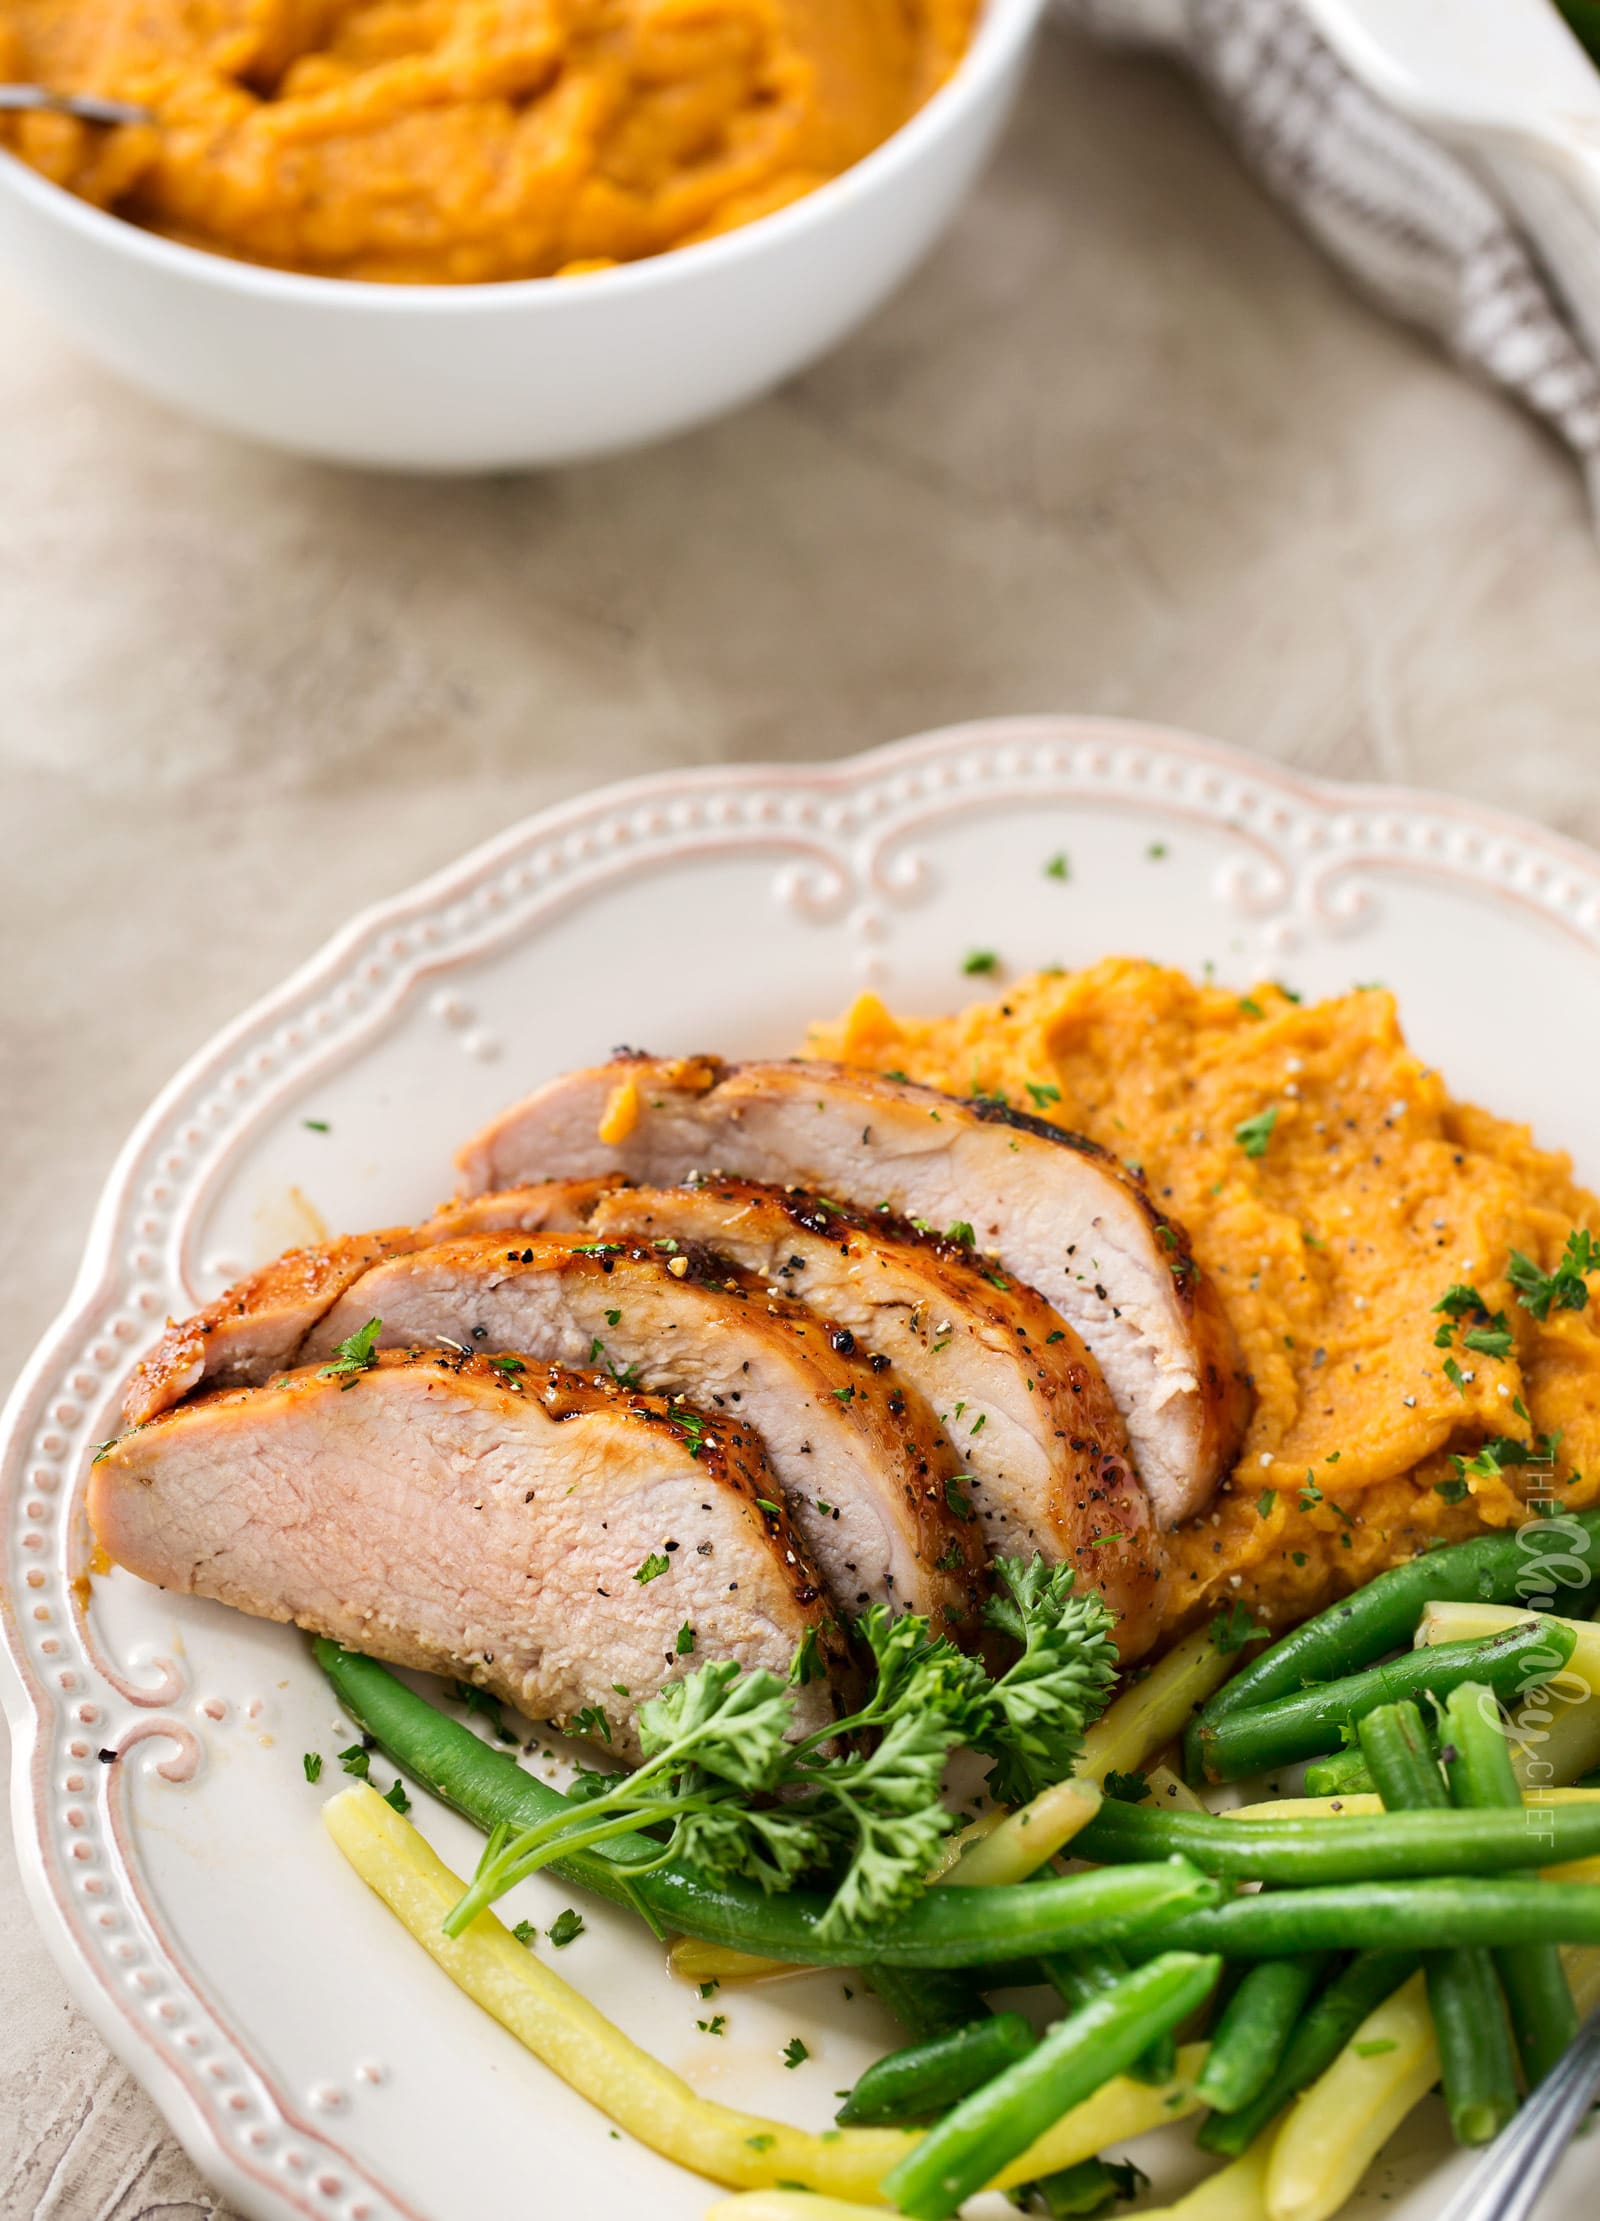 Ginger Honey Roasted Pork Tenderloin | Perfect for a busy weeknight, this pork tenderloin is loaded with amazing flavors and ready in less than 30 minutes! | https://thechunkychef.com | #dinner #pork #roasted #easyrecipe